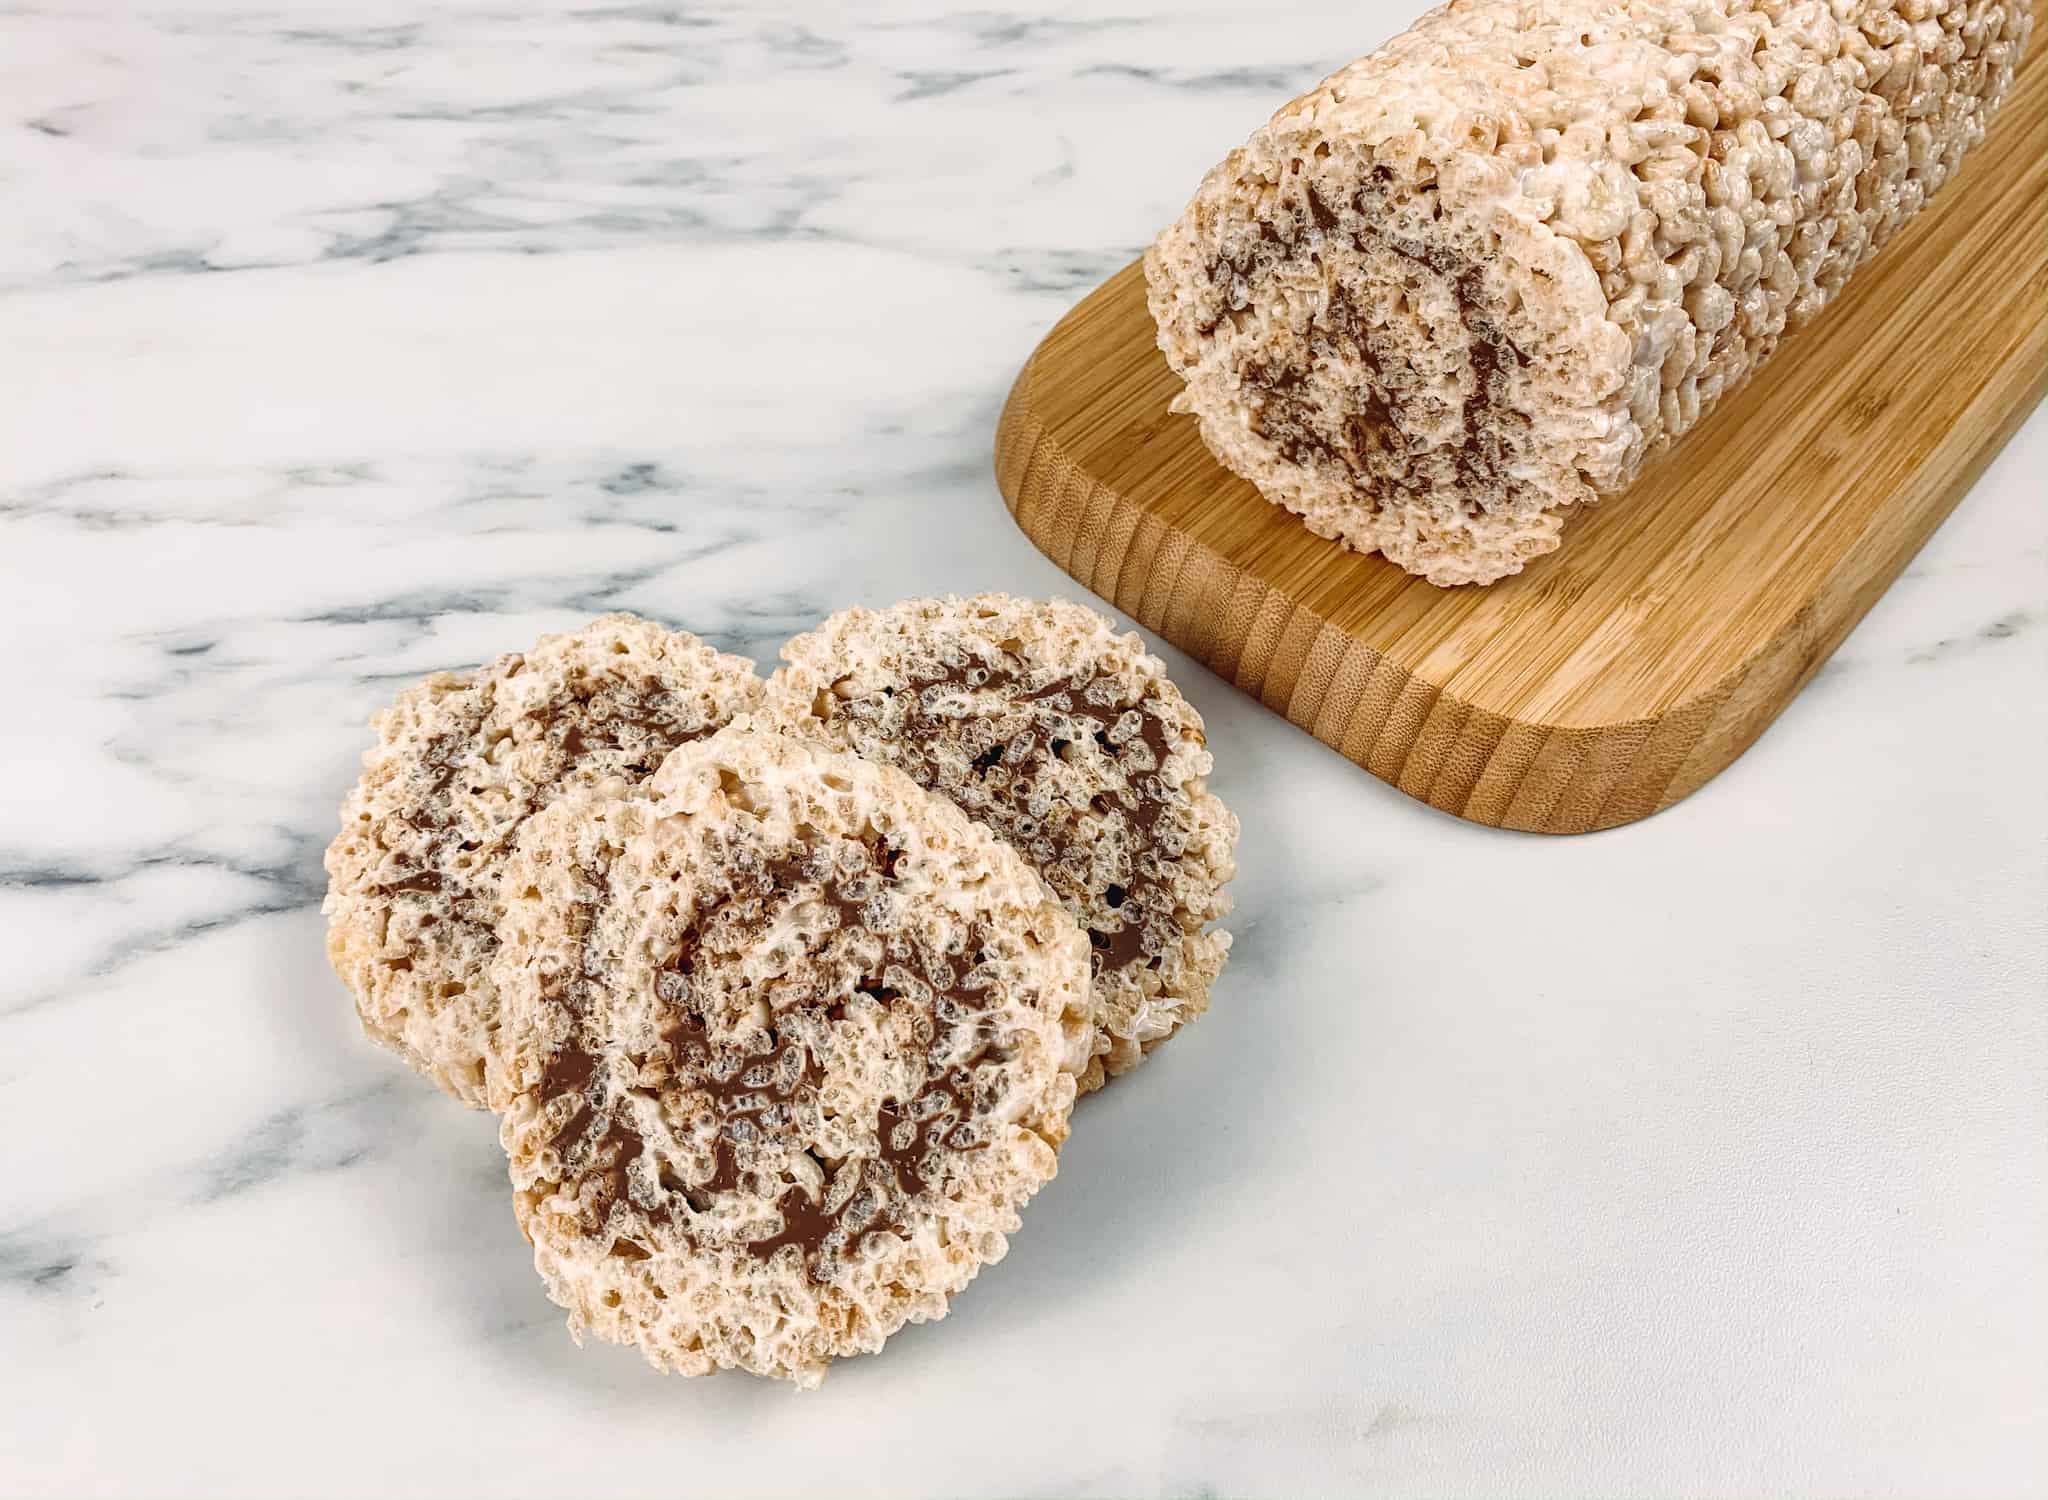 Gluten Free Rice Krispies and Chocolate treats perfect as a dessert or for Valentine's Day